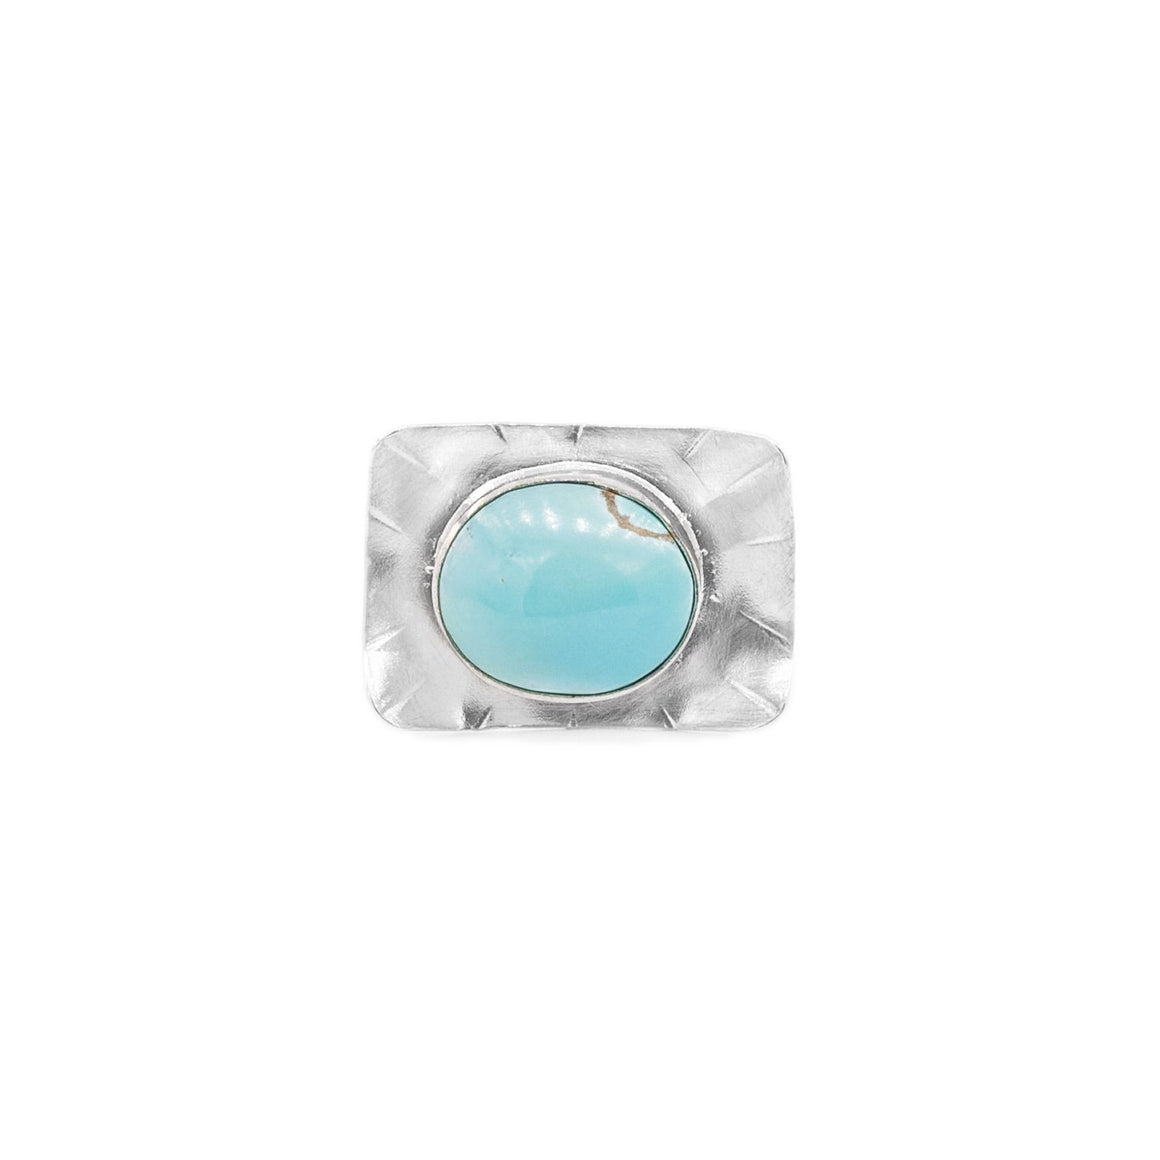 Sleeping Beauty Turquoise and Silver Ring by Original Sin Jewelry